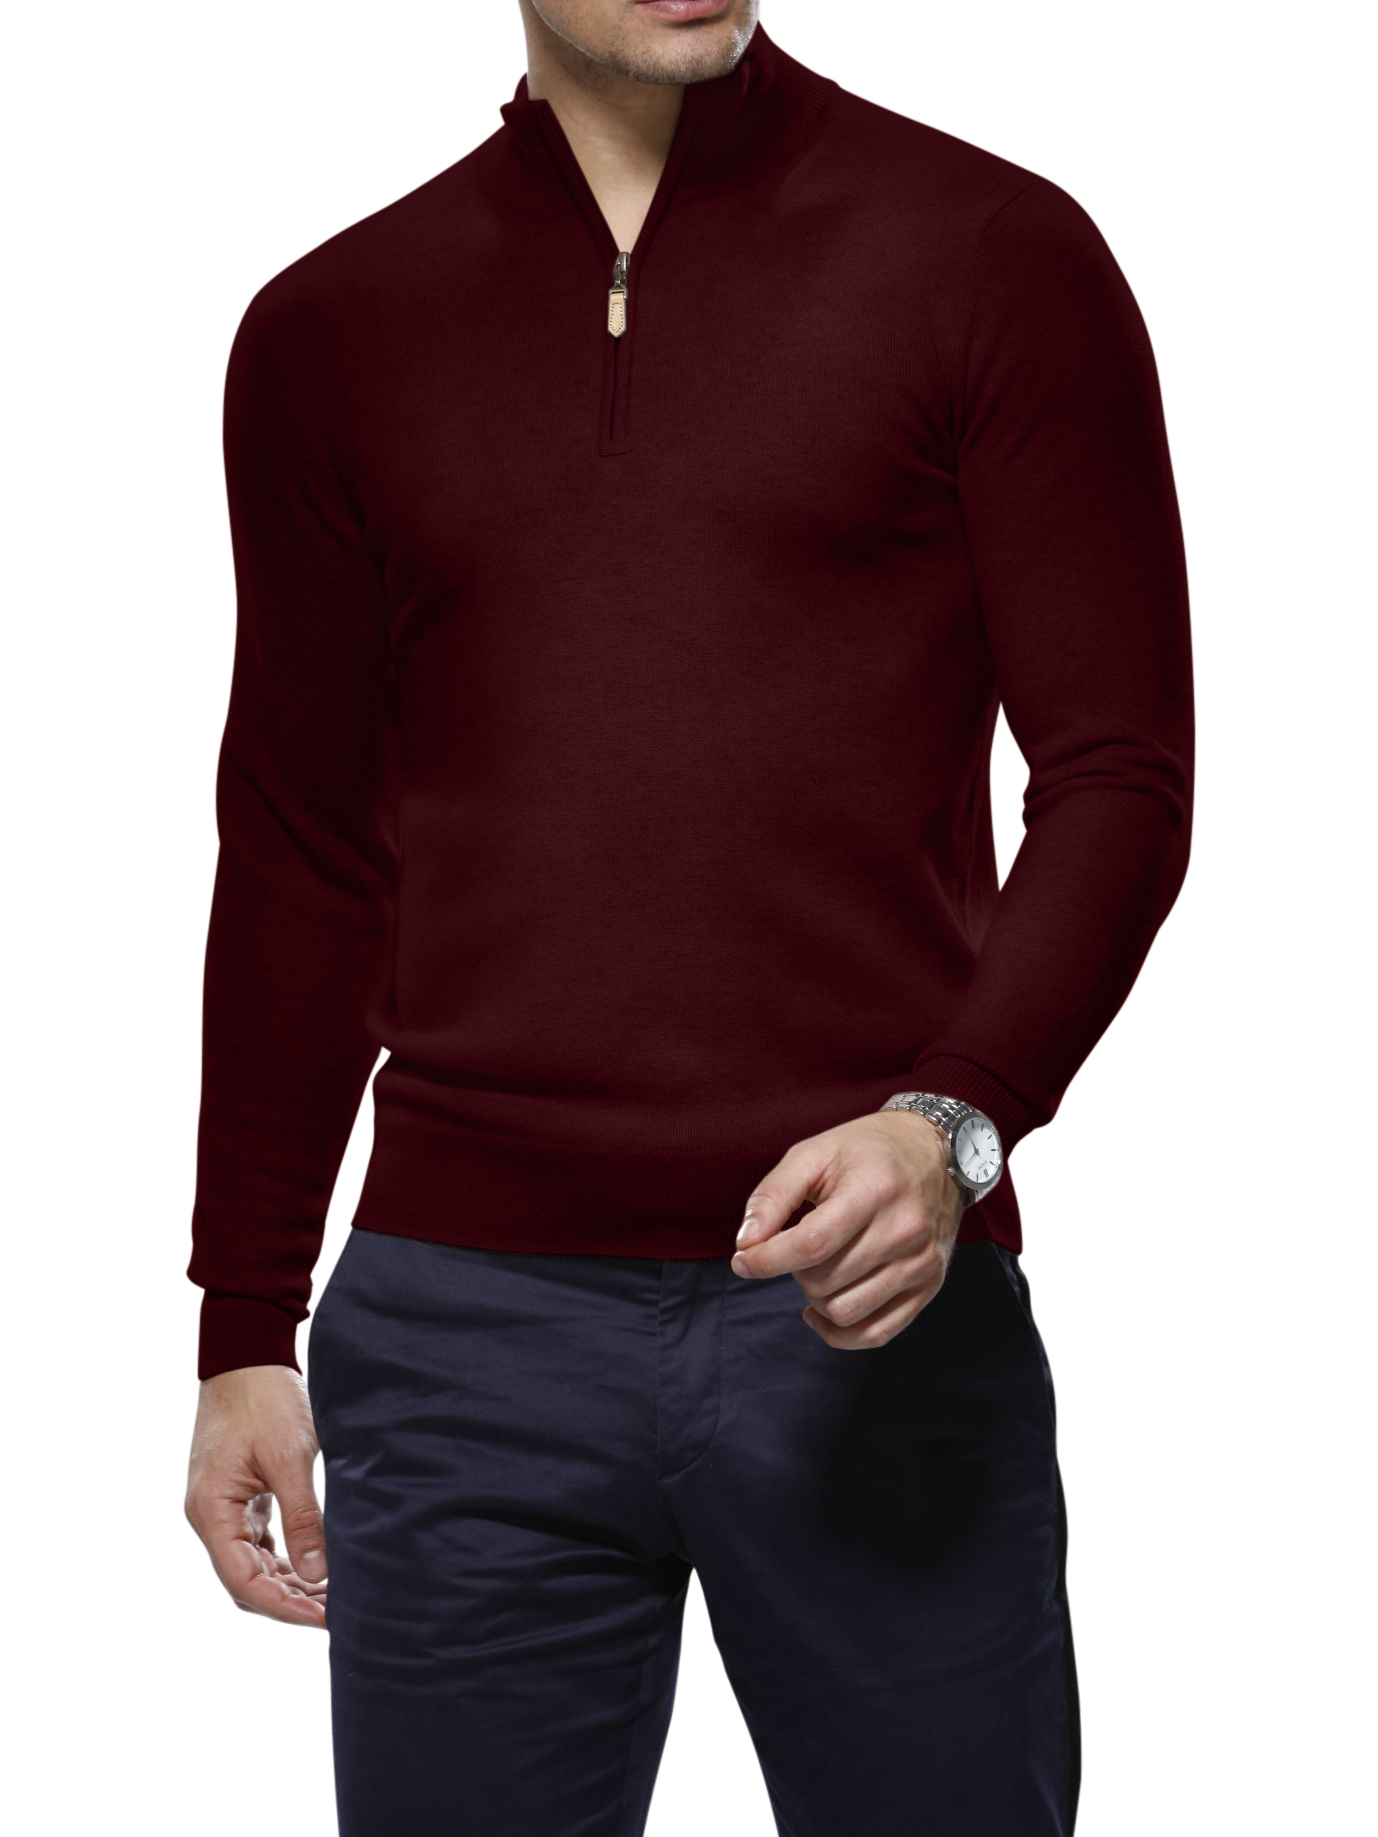 Dark Merlot Merino Wool 1/4 Zip Mock Sweater